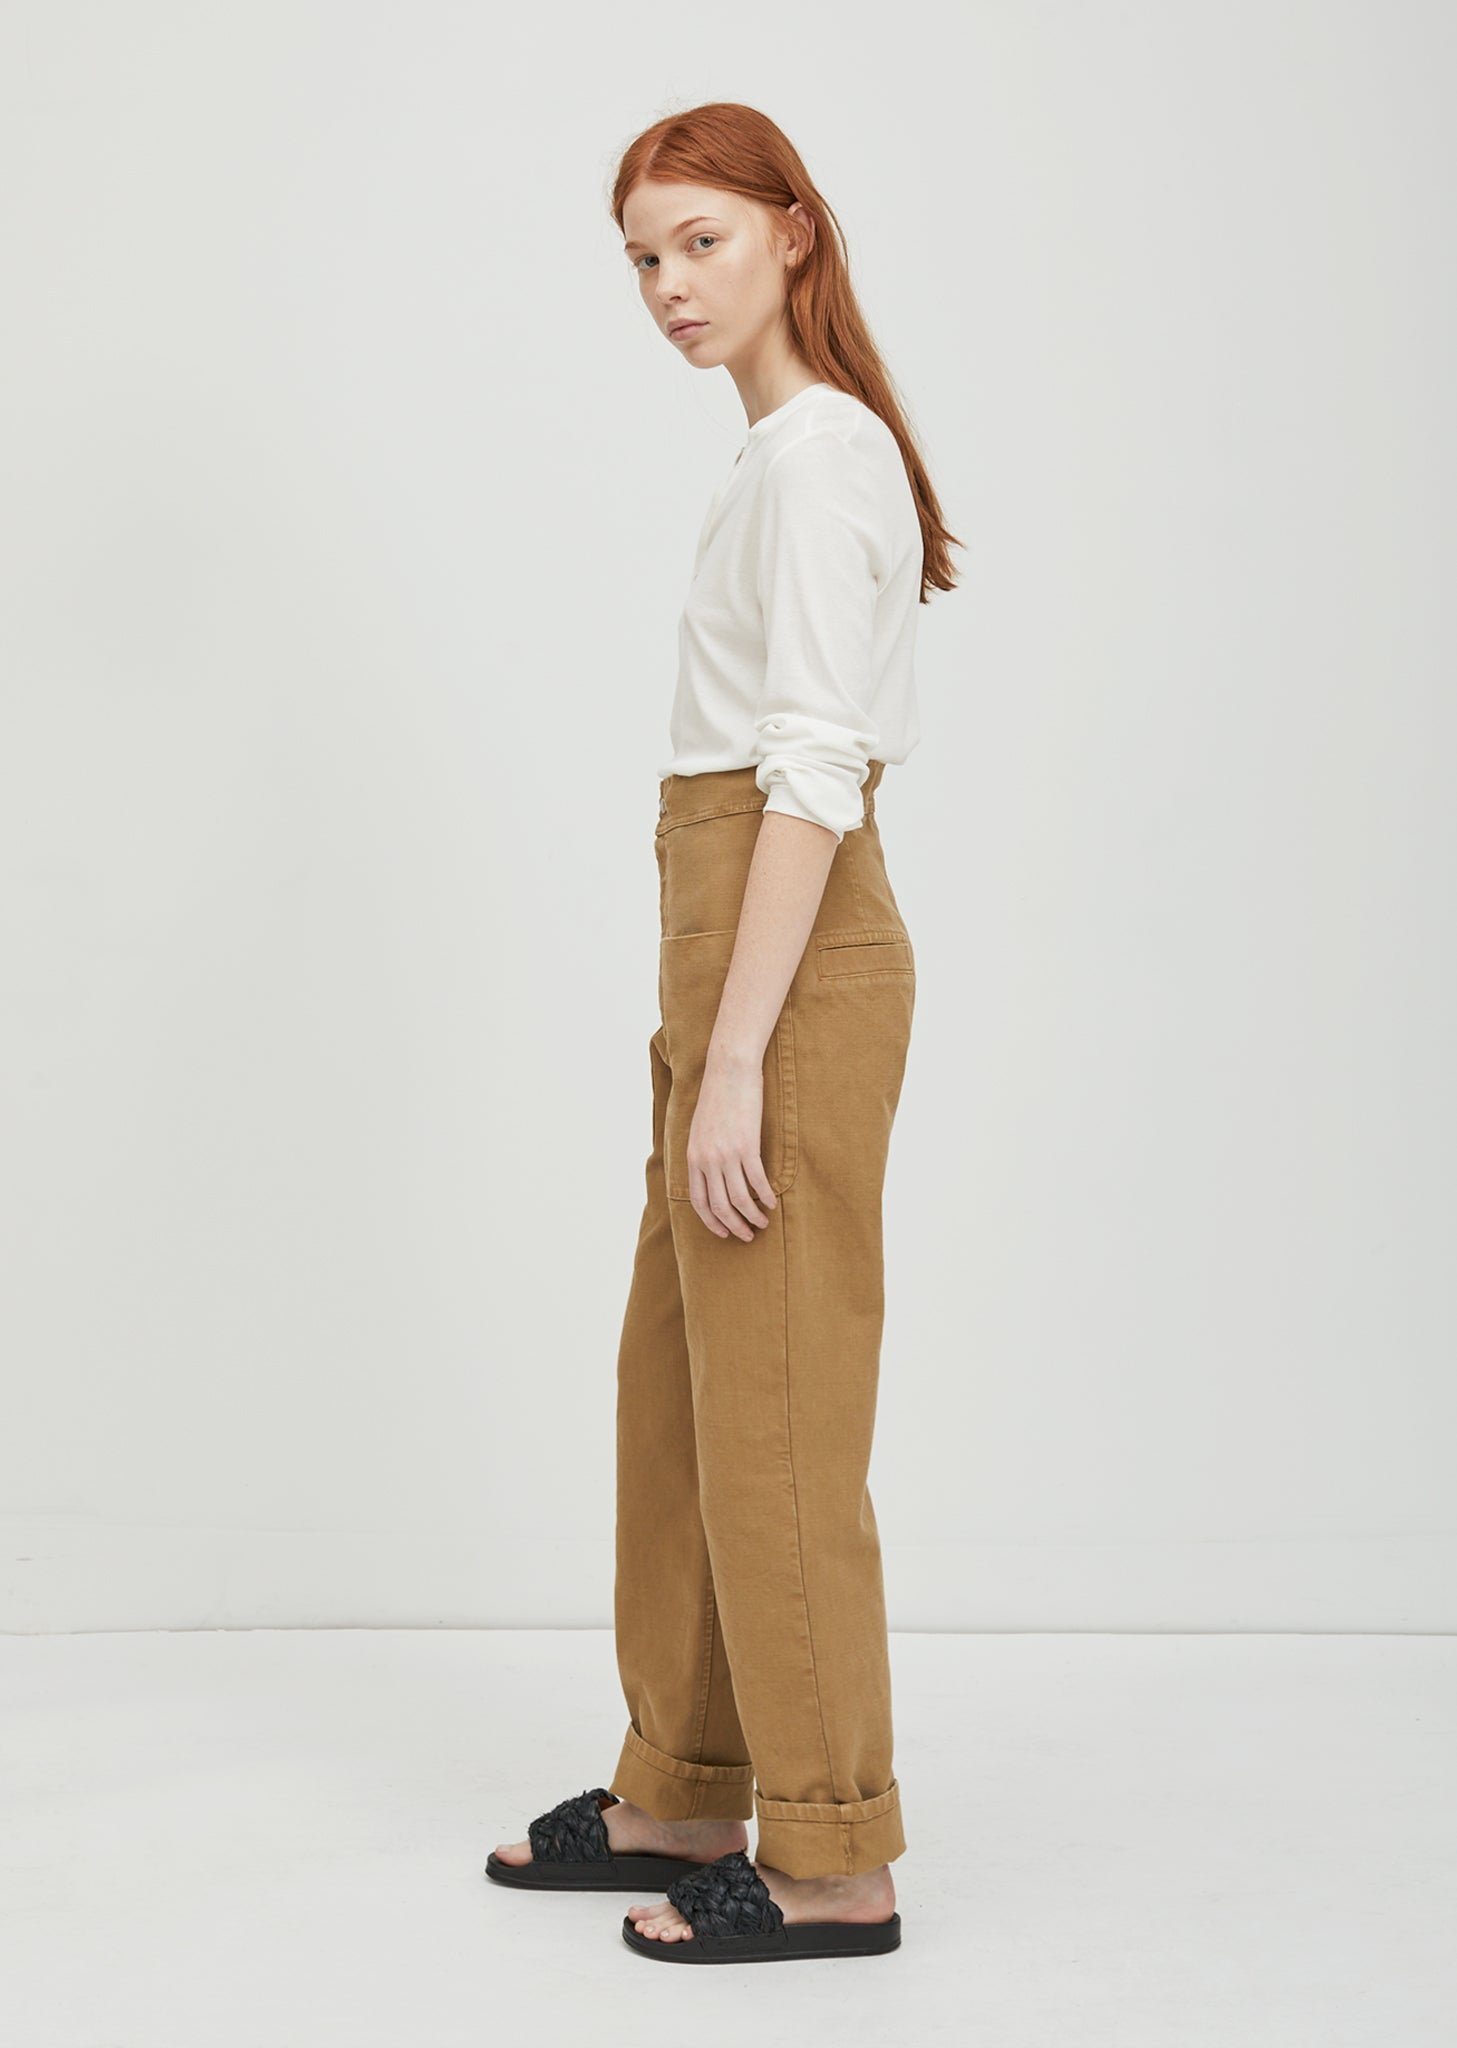 Lana Cotton Trouser